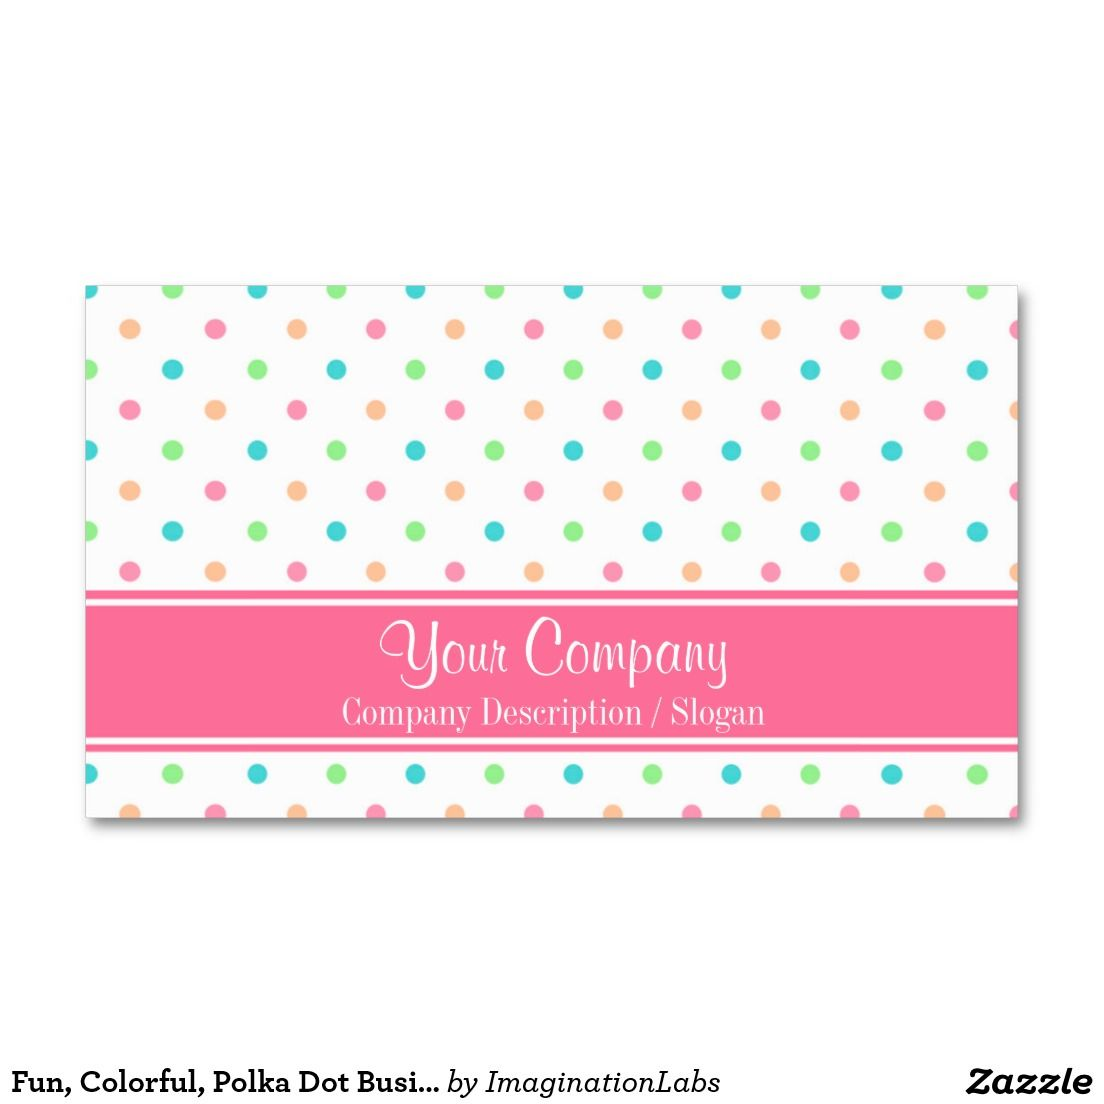 Fun, Colorful, Polka Dot Business Card | Business cards and Business